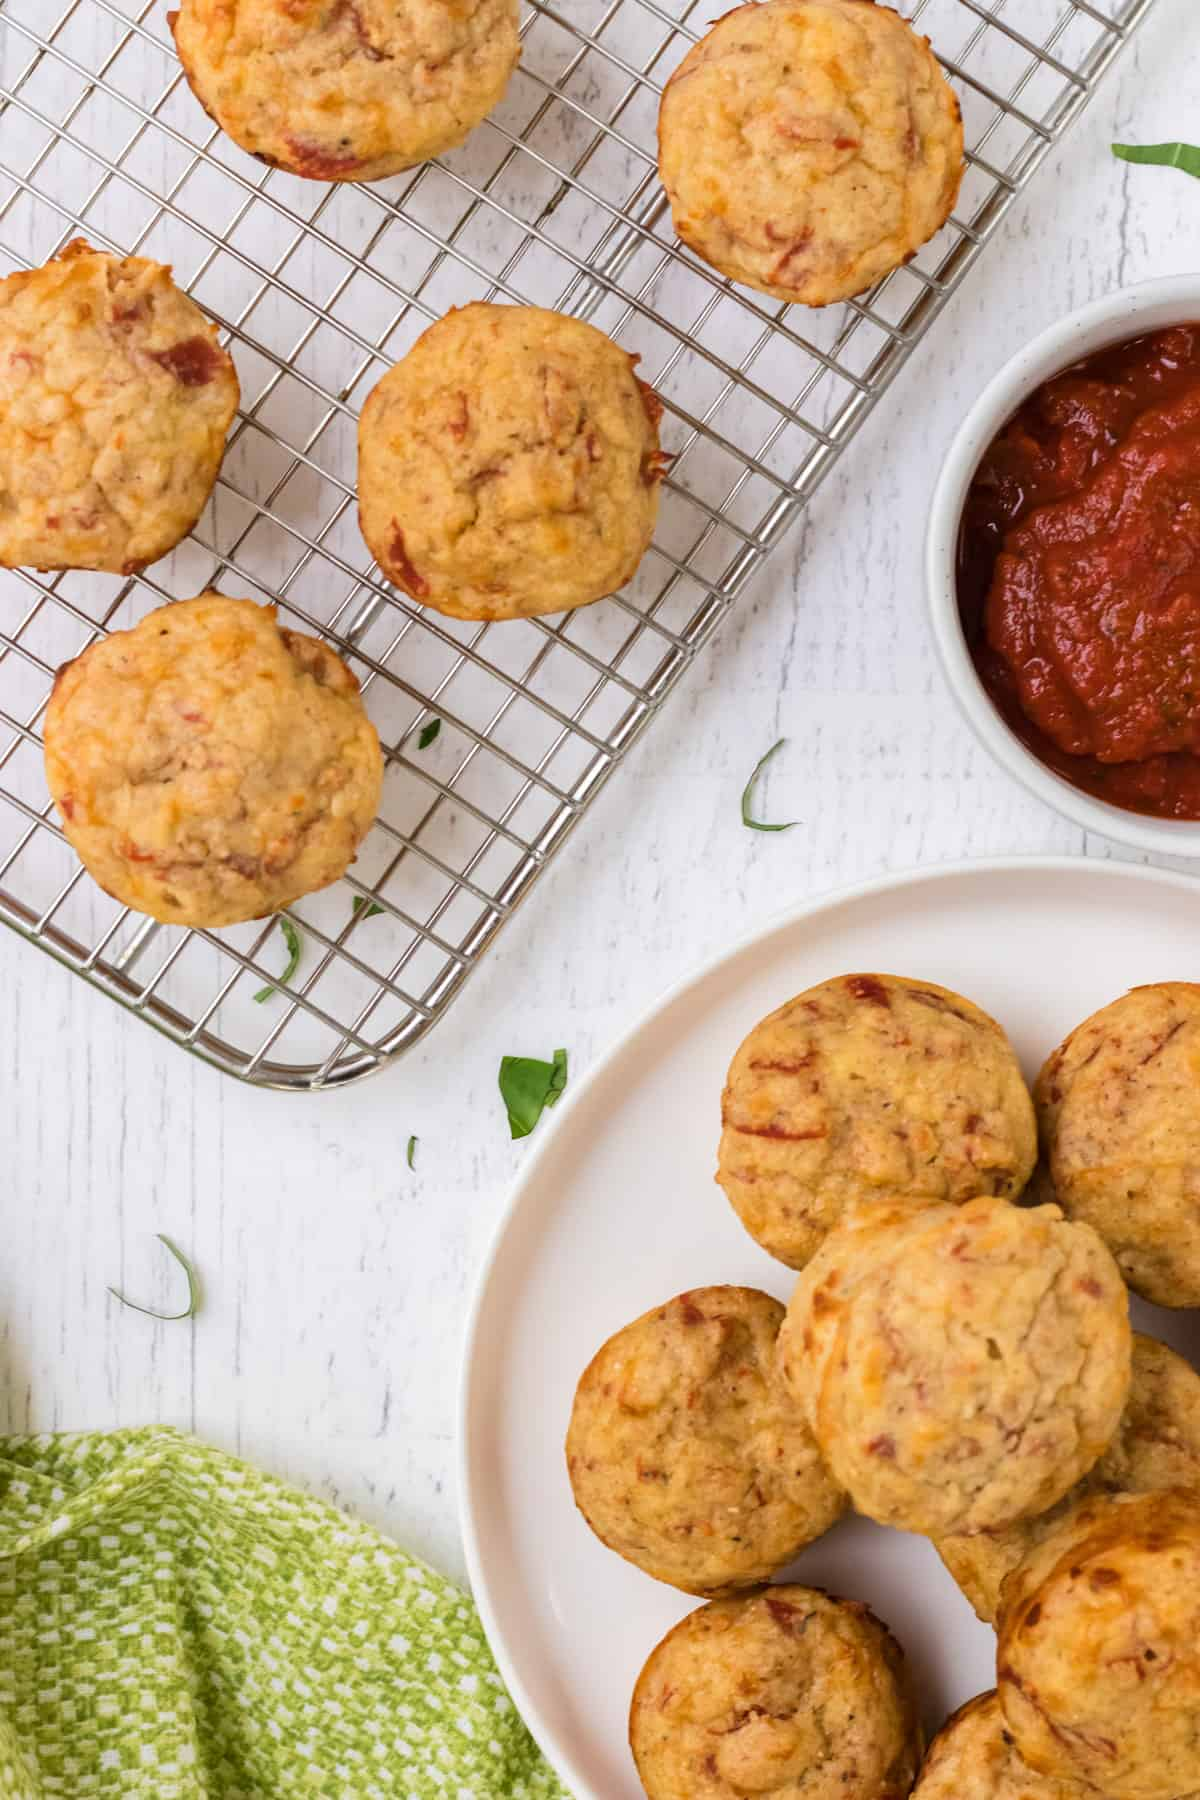 Silver cooling rack with muffins and white plate of pizza muffins with bowl of marinara sauce in upper background and green linen in lower foreground.